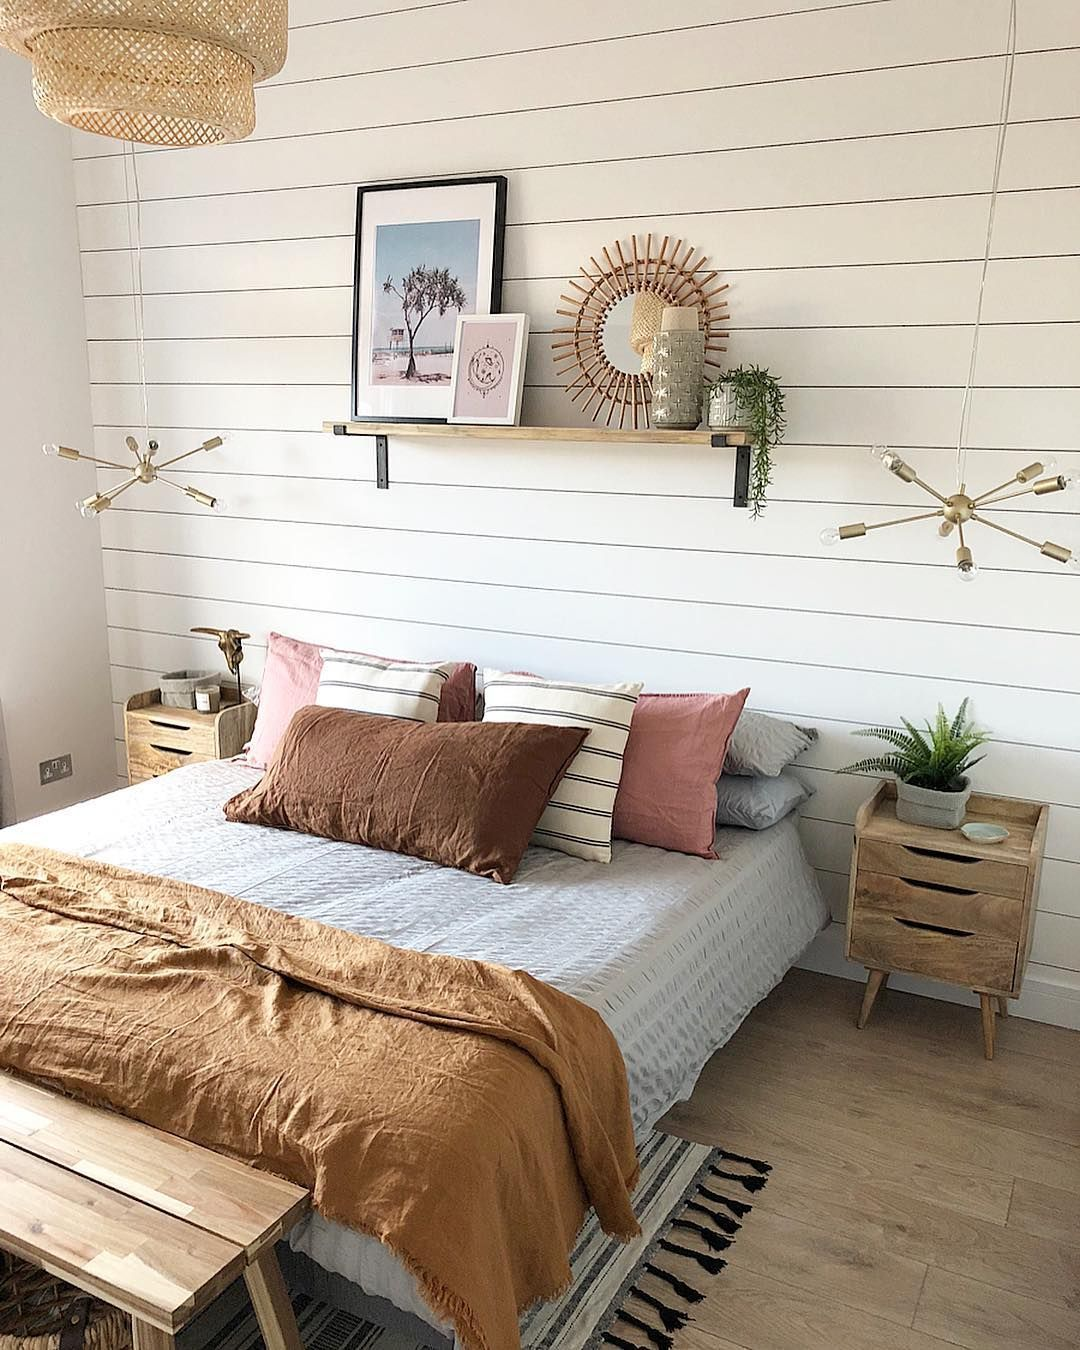 Spare Room Design Ideas: 19 Recommended Small Bedroom Ideas 2020